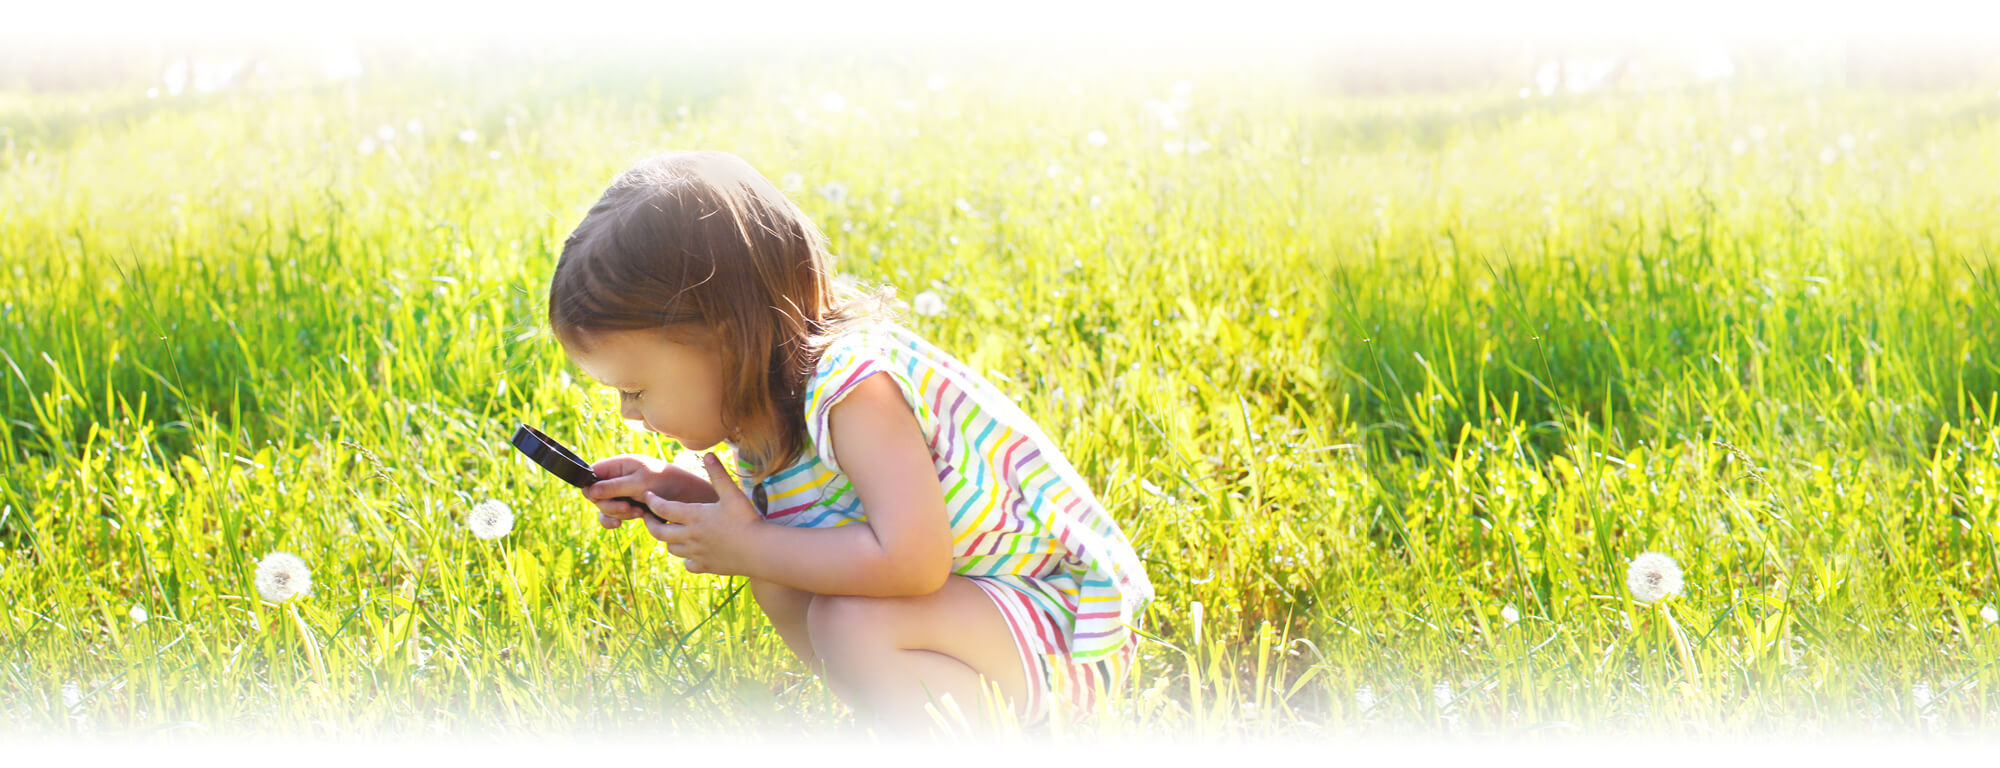 Prek girl in field with magnifying glass